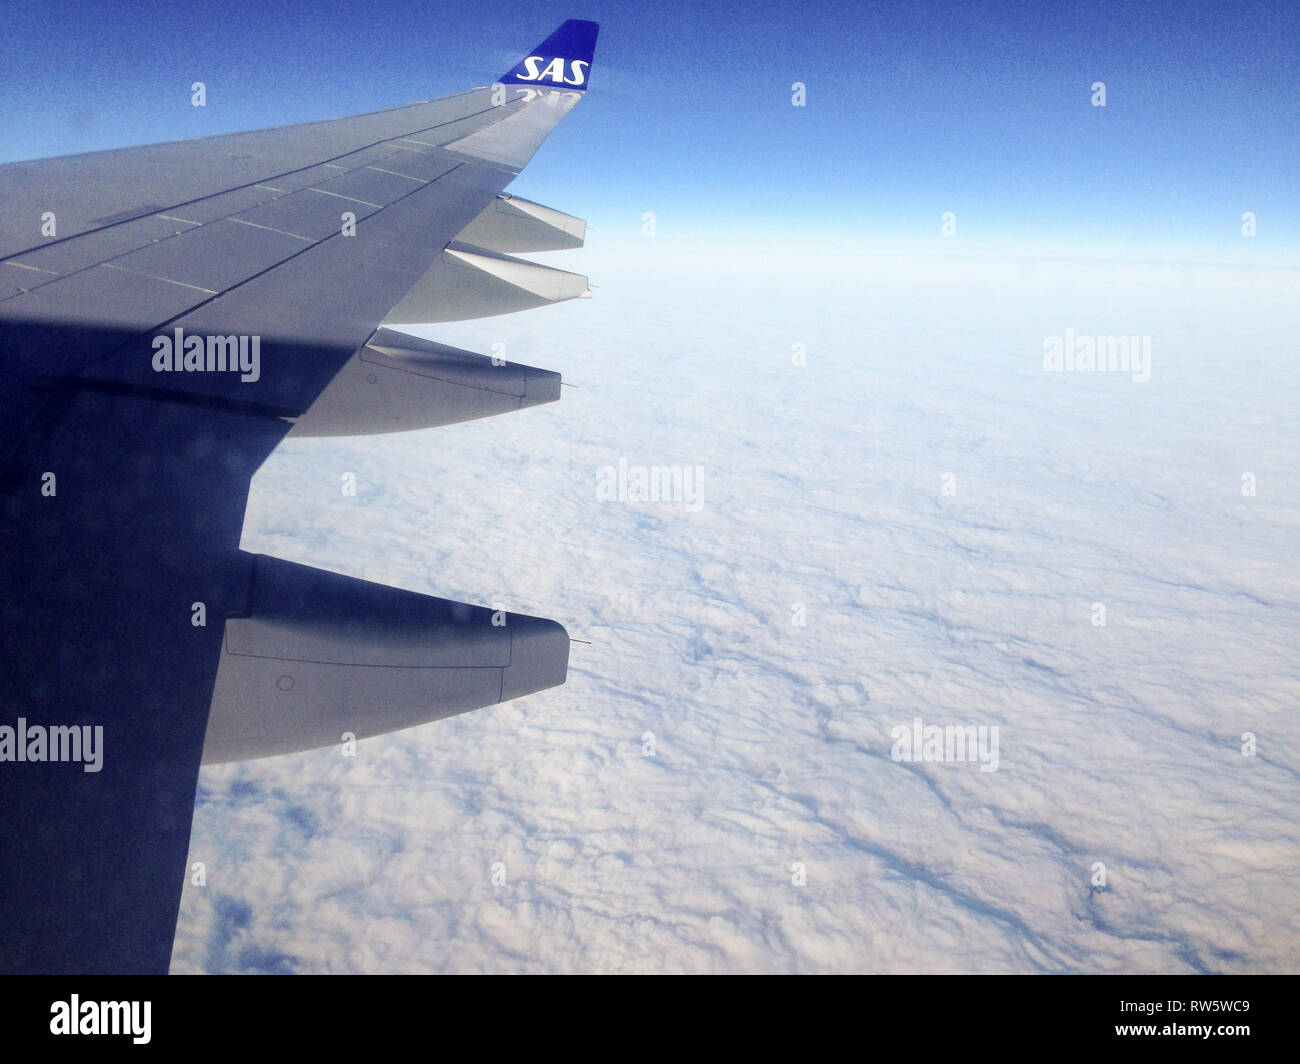 View out of a SAS plane above clouds with view of the wing - Stock Image